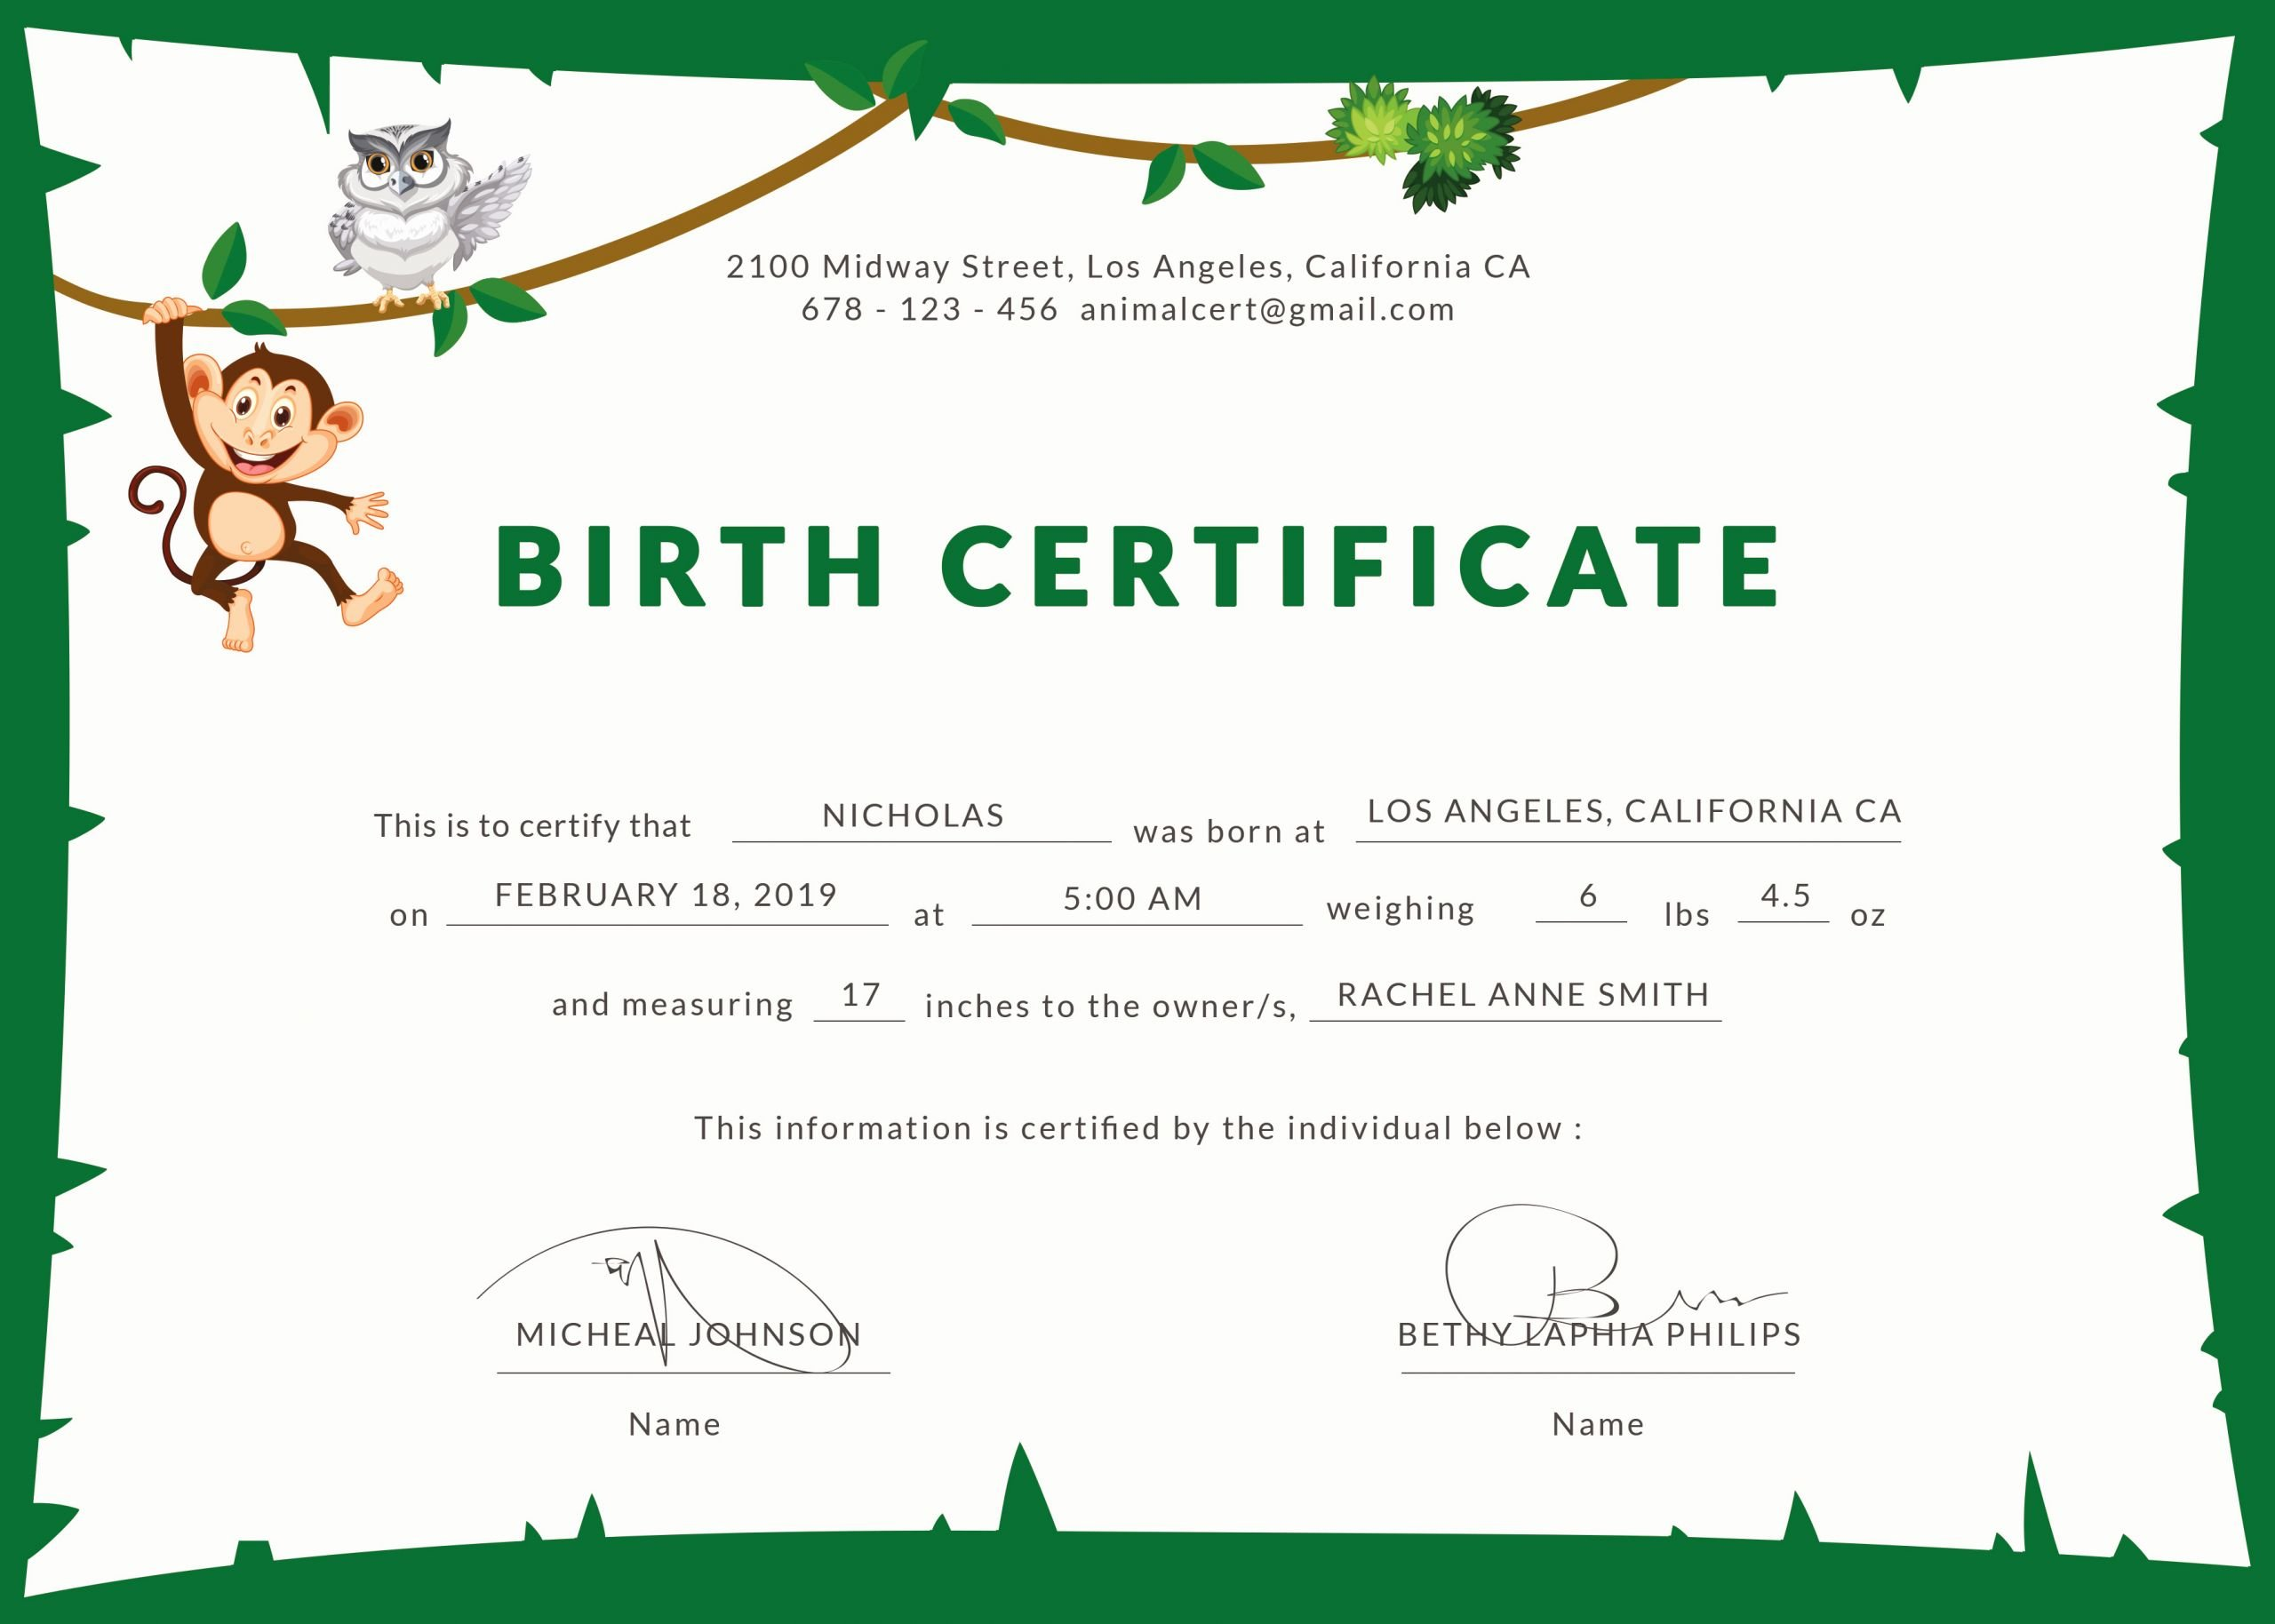 Birth Certificate Template Free Awesome Birth Certificate